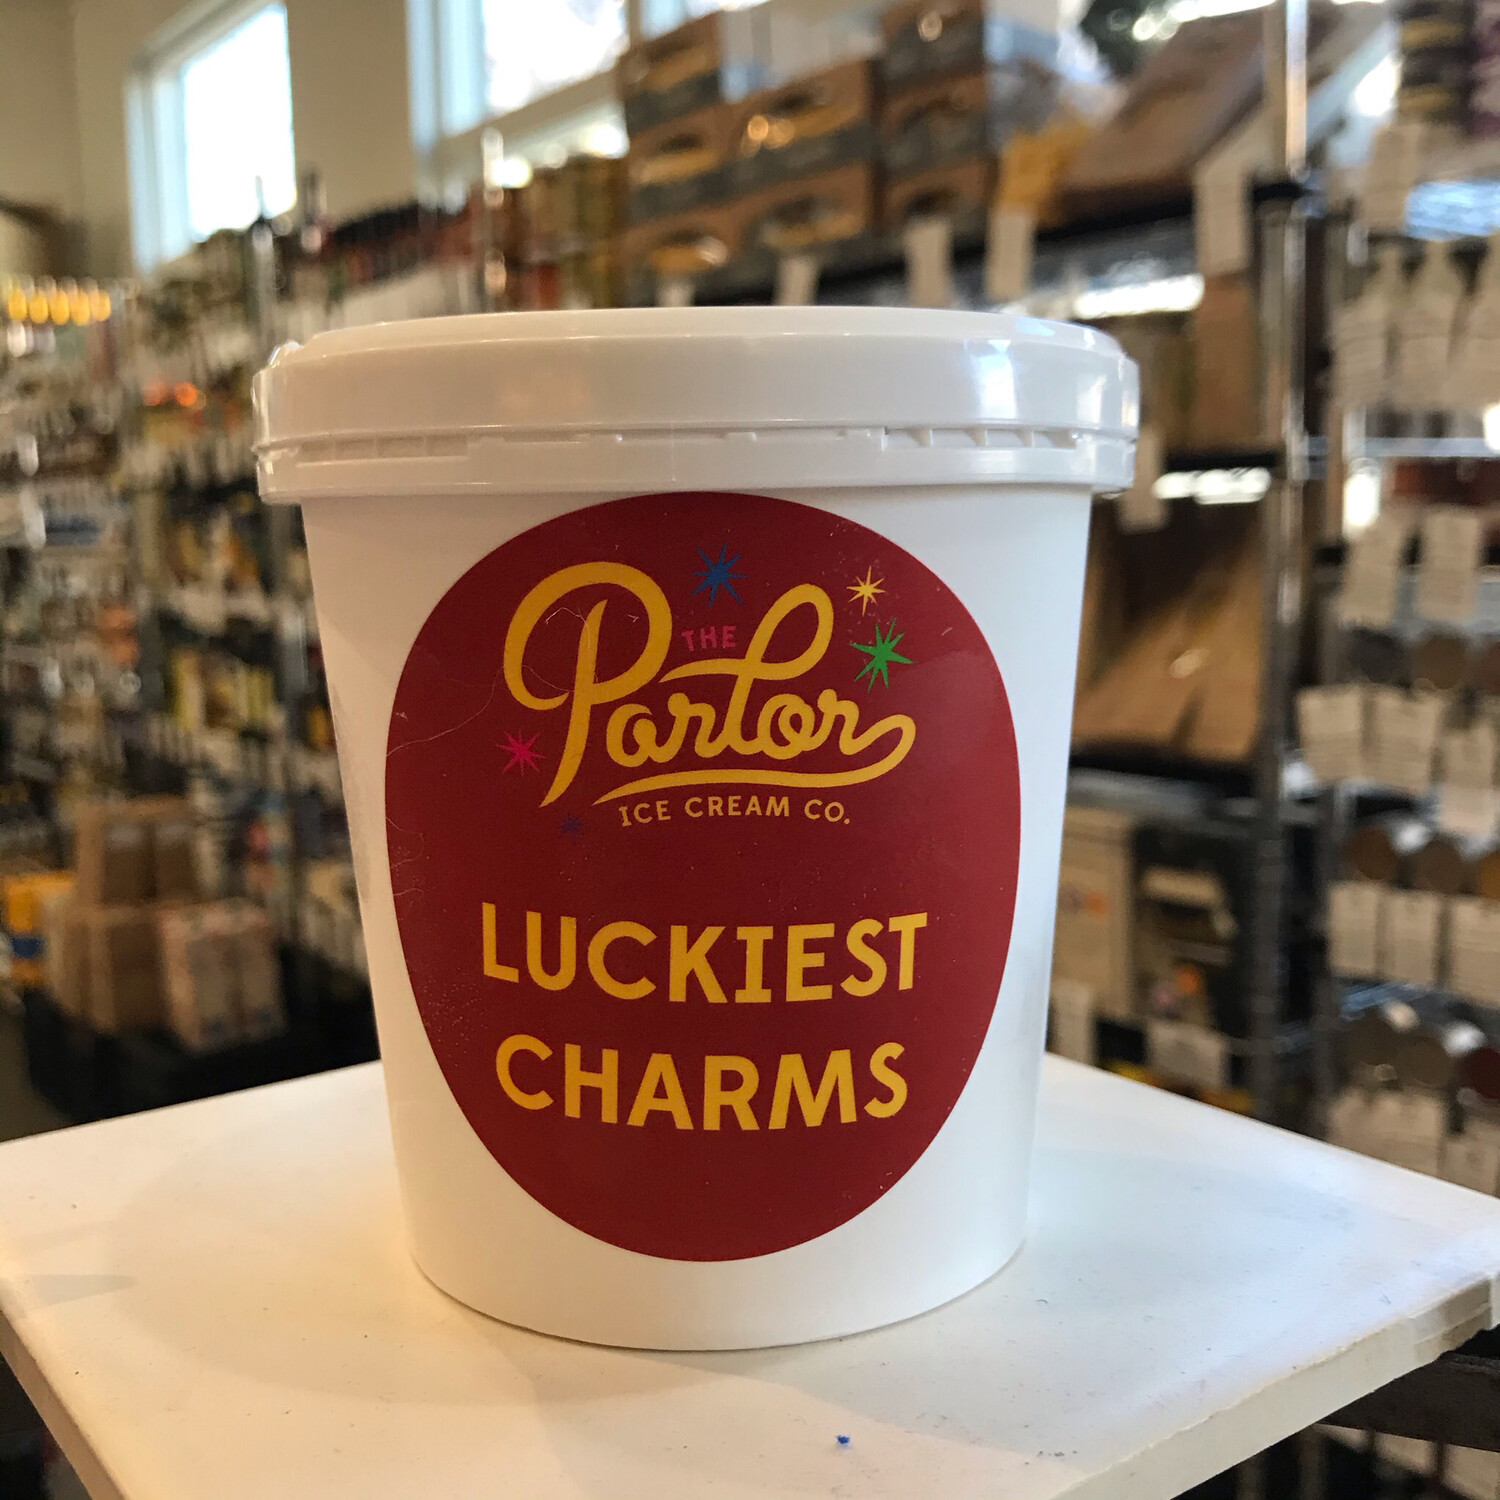 Parlor Luckiest Charms